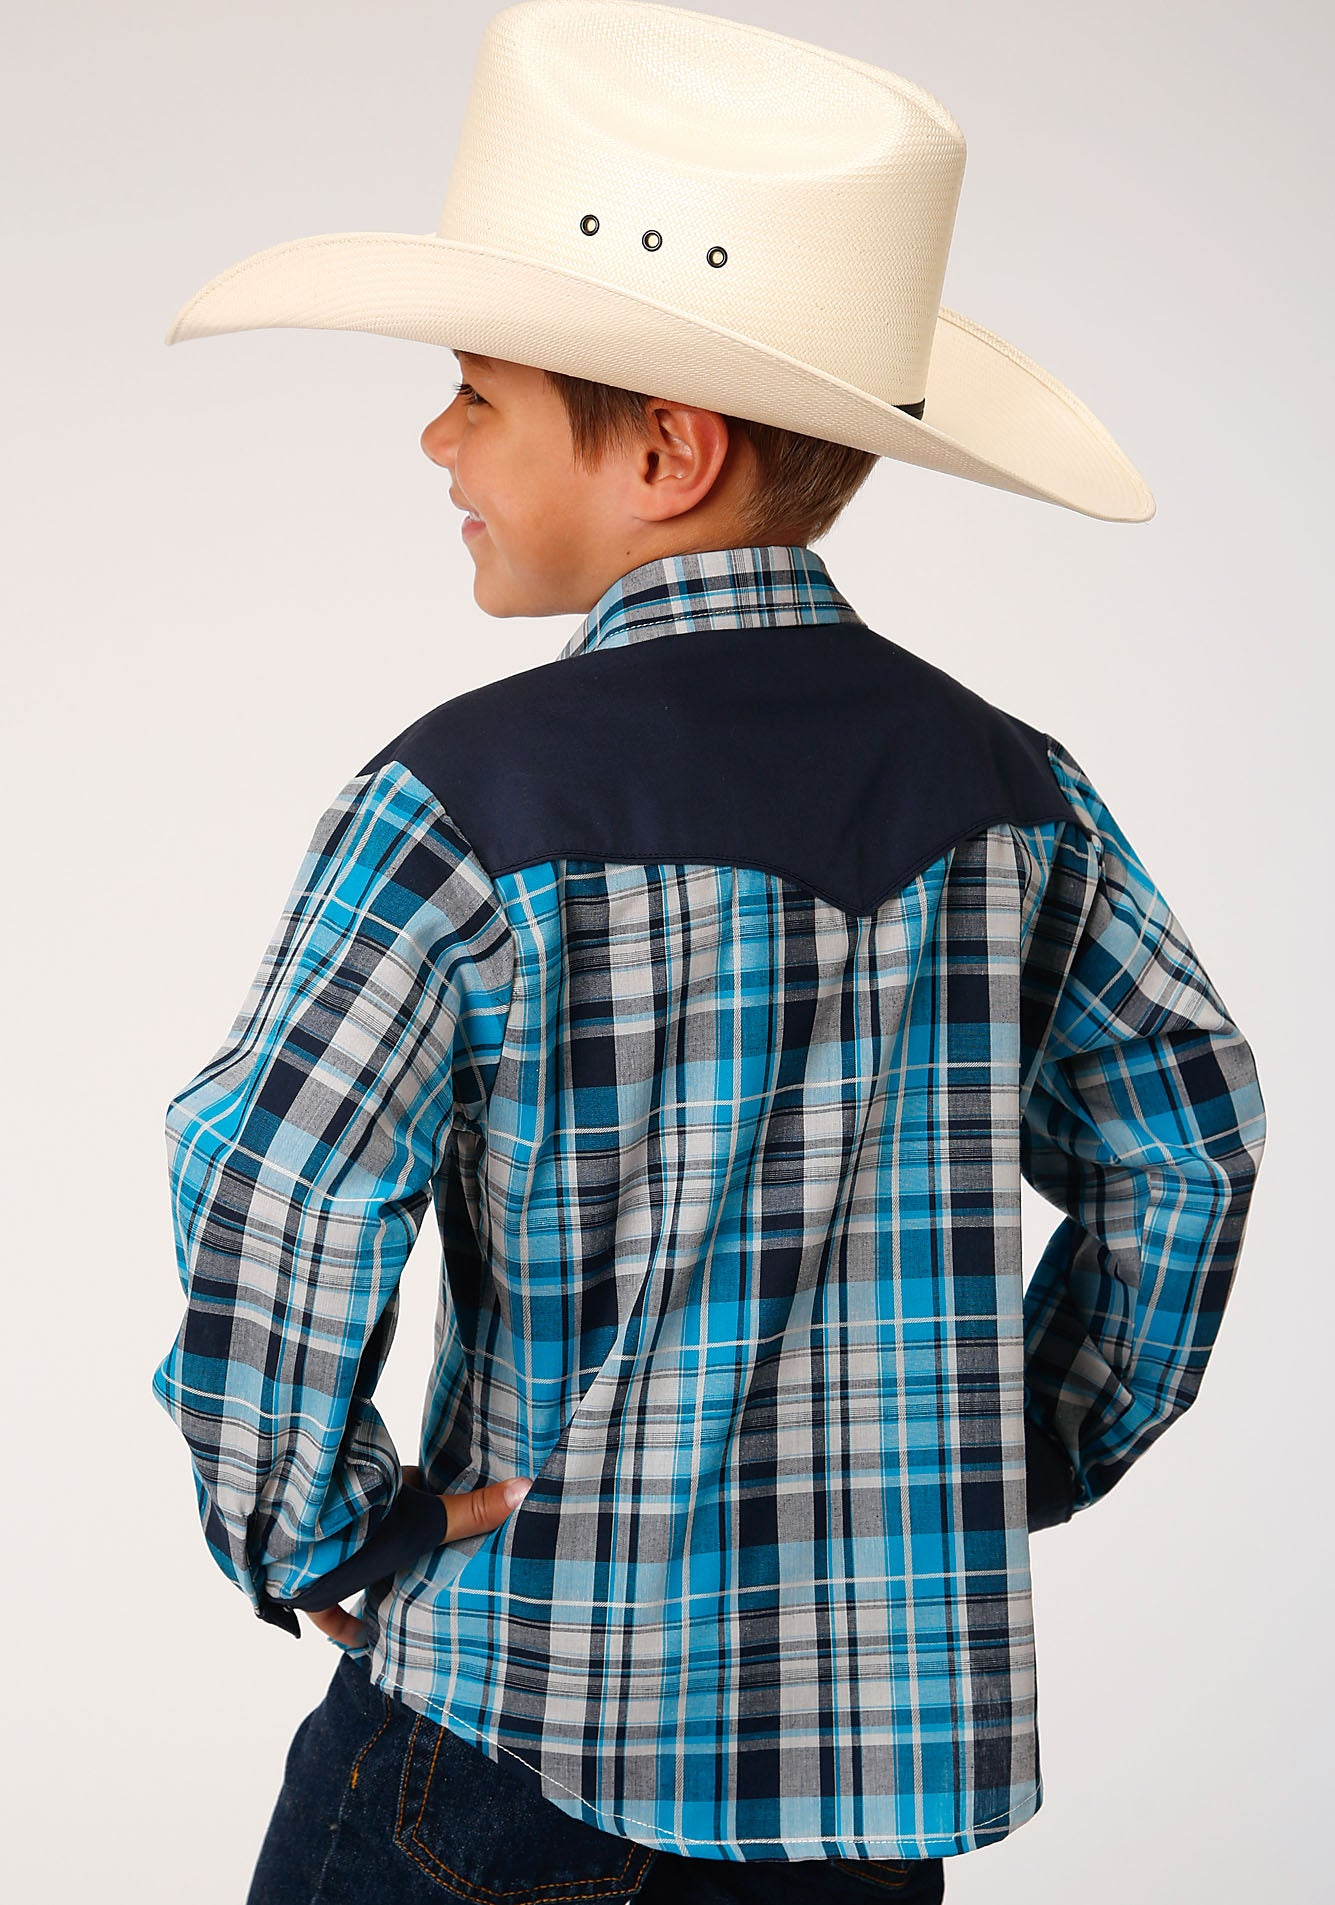 ROPER BOYS BLUE 00053 TURQUOISE/BLACK/GREY PLAID KARMAN SPECIAL STYLES LONG SLEEVE